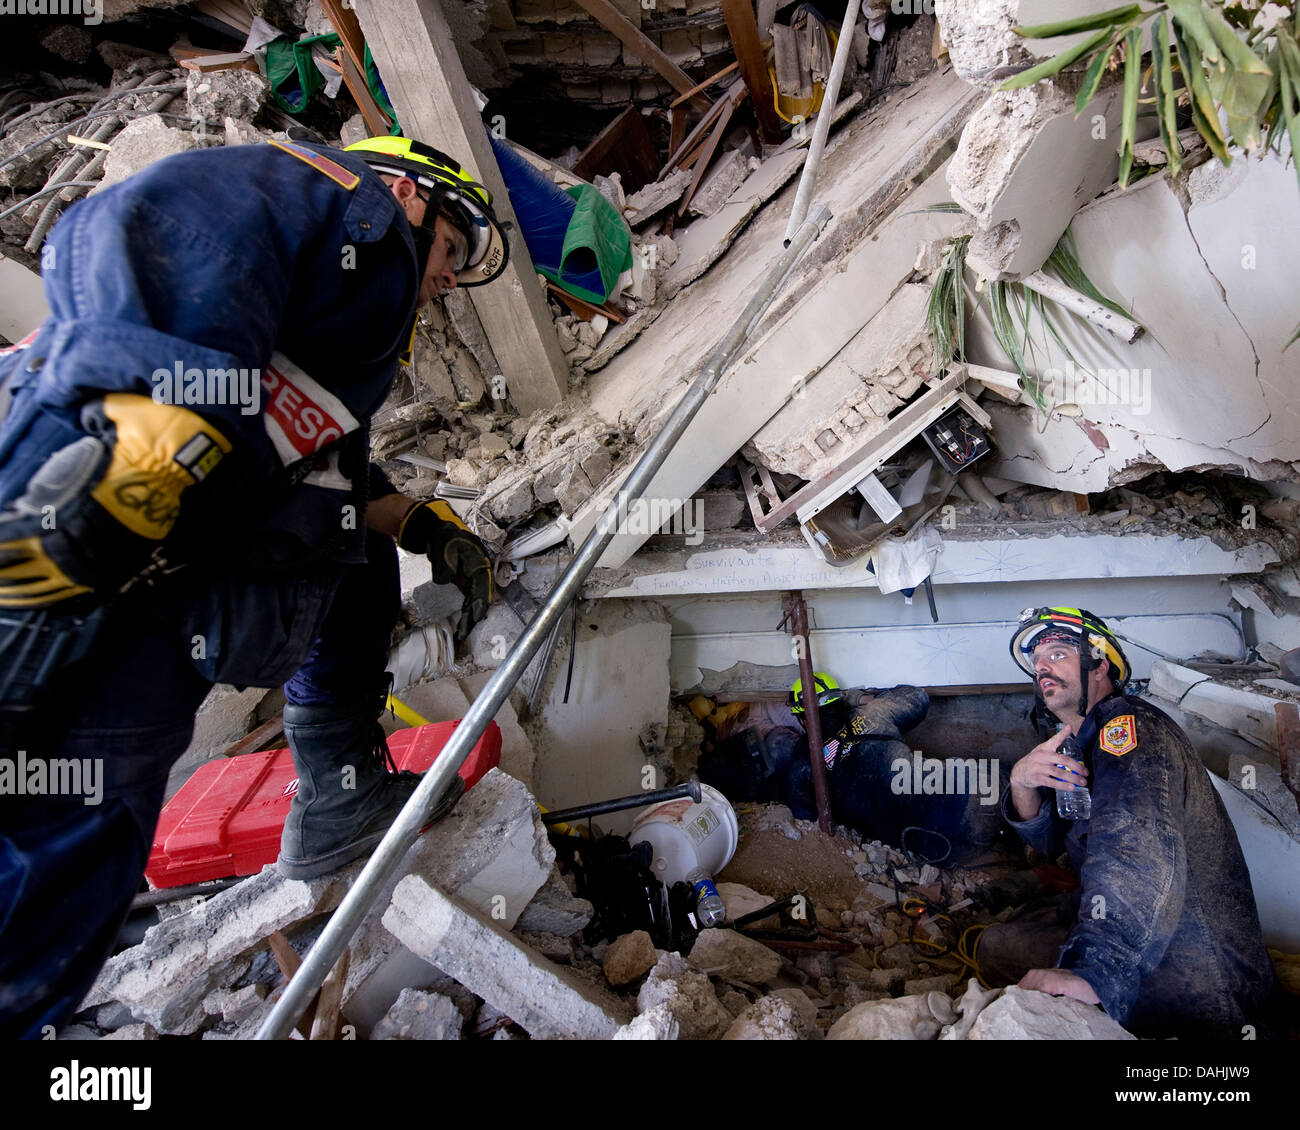 Members of Fairfax County Virginia Urban Search and Rescue team conduct a rescue operation in a collapsed section - Stock Image